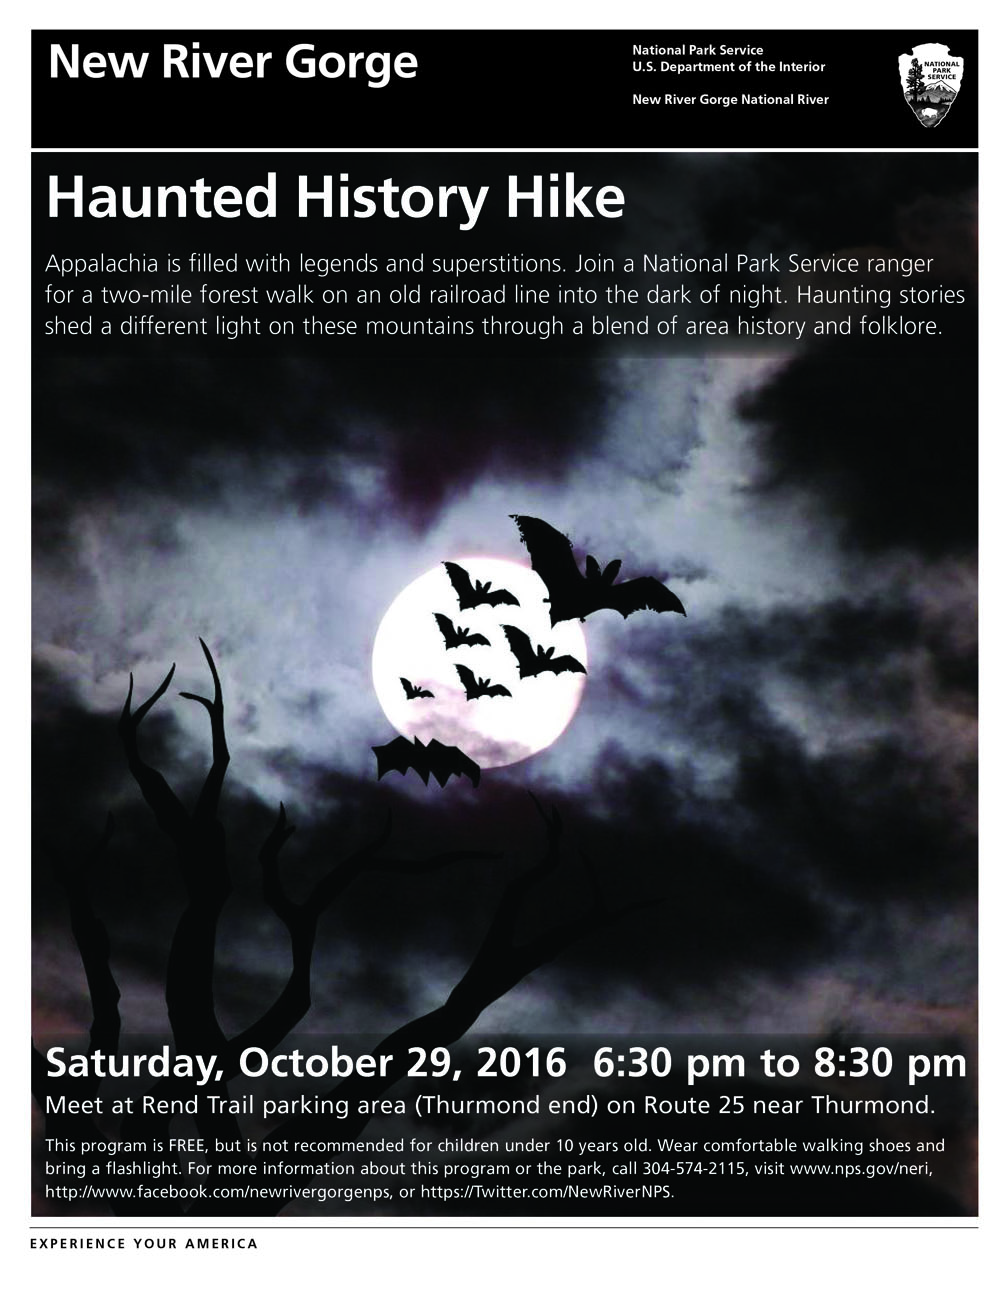 Haunted History Hike flier